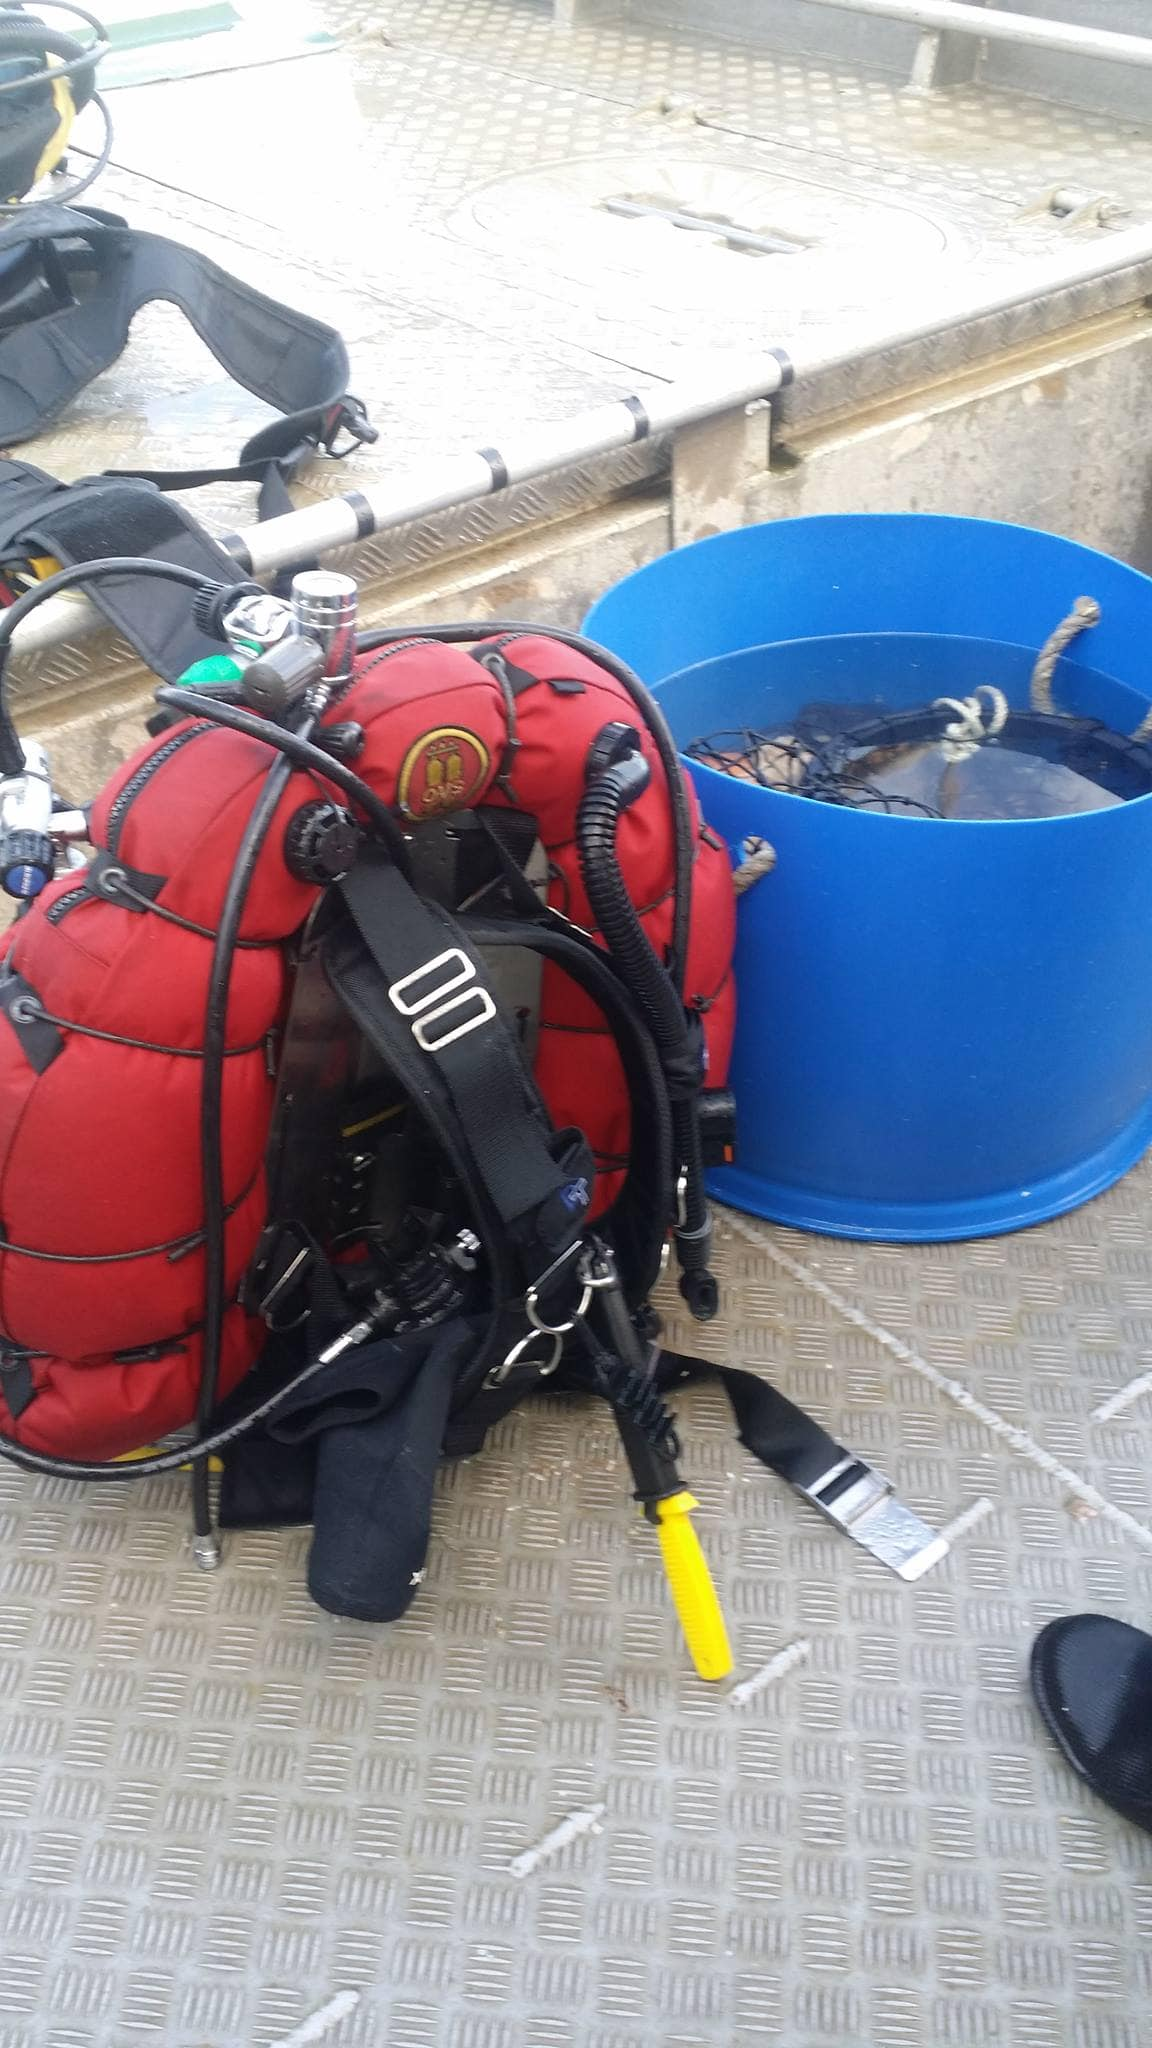 Dive gear and some of the days catch of scallops